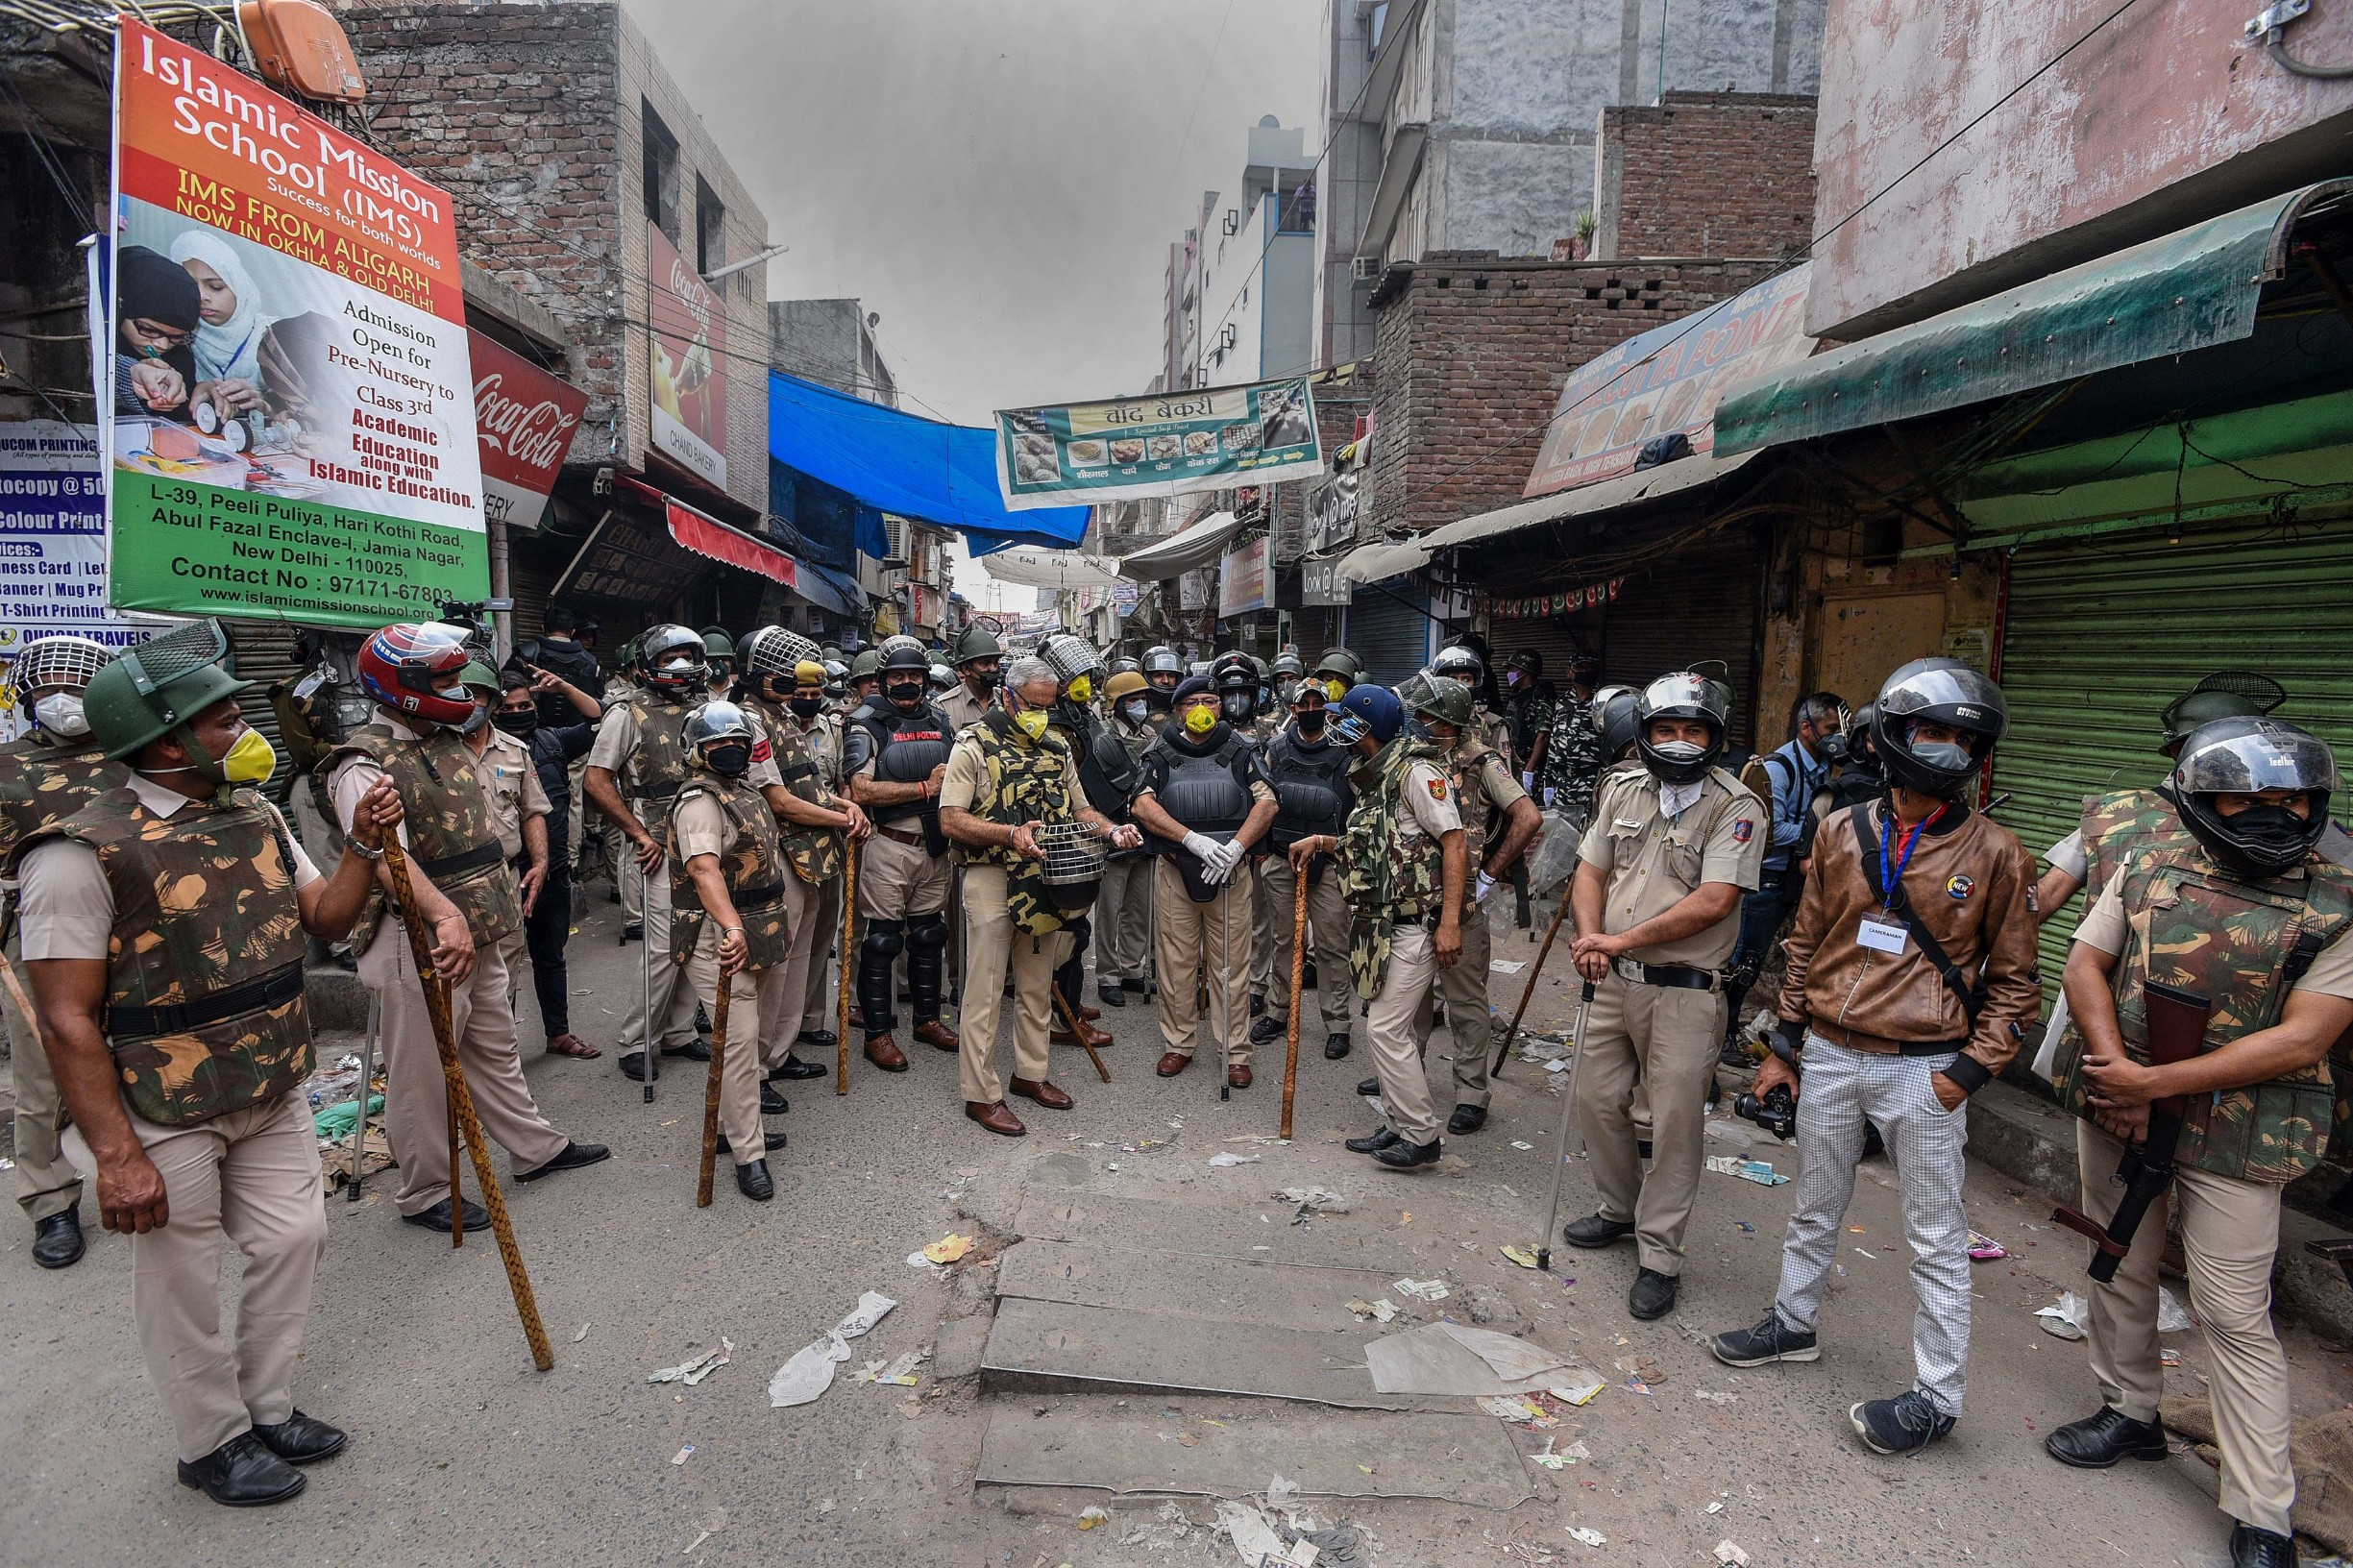 NEW DELHI, INDIA - MARCH 24: Heavy police deployment in the vicinity during the clearing of the site of an indefinnite sit-in protest, at Shaheen Bagh on March 24, 2020 in New Delhi, India. The police cleared the anti CAA, NRC and NPR protest site amid a prevailing lockdown in the national capital in the wake of coronavirus., Image: 509207169, License: Rights-managed, Restrictions: *** World Rights ***, Model Release: no, Credit line: Hindustan Times / ddp USA / Profimedia